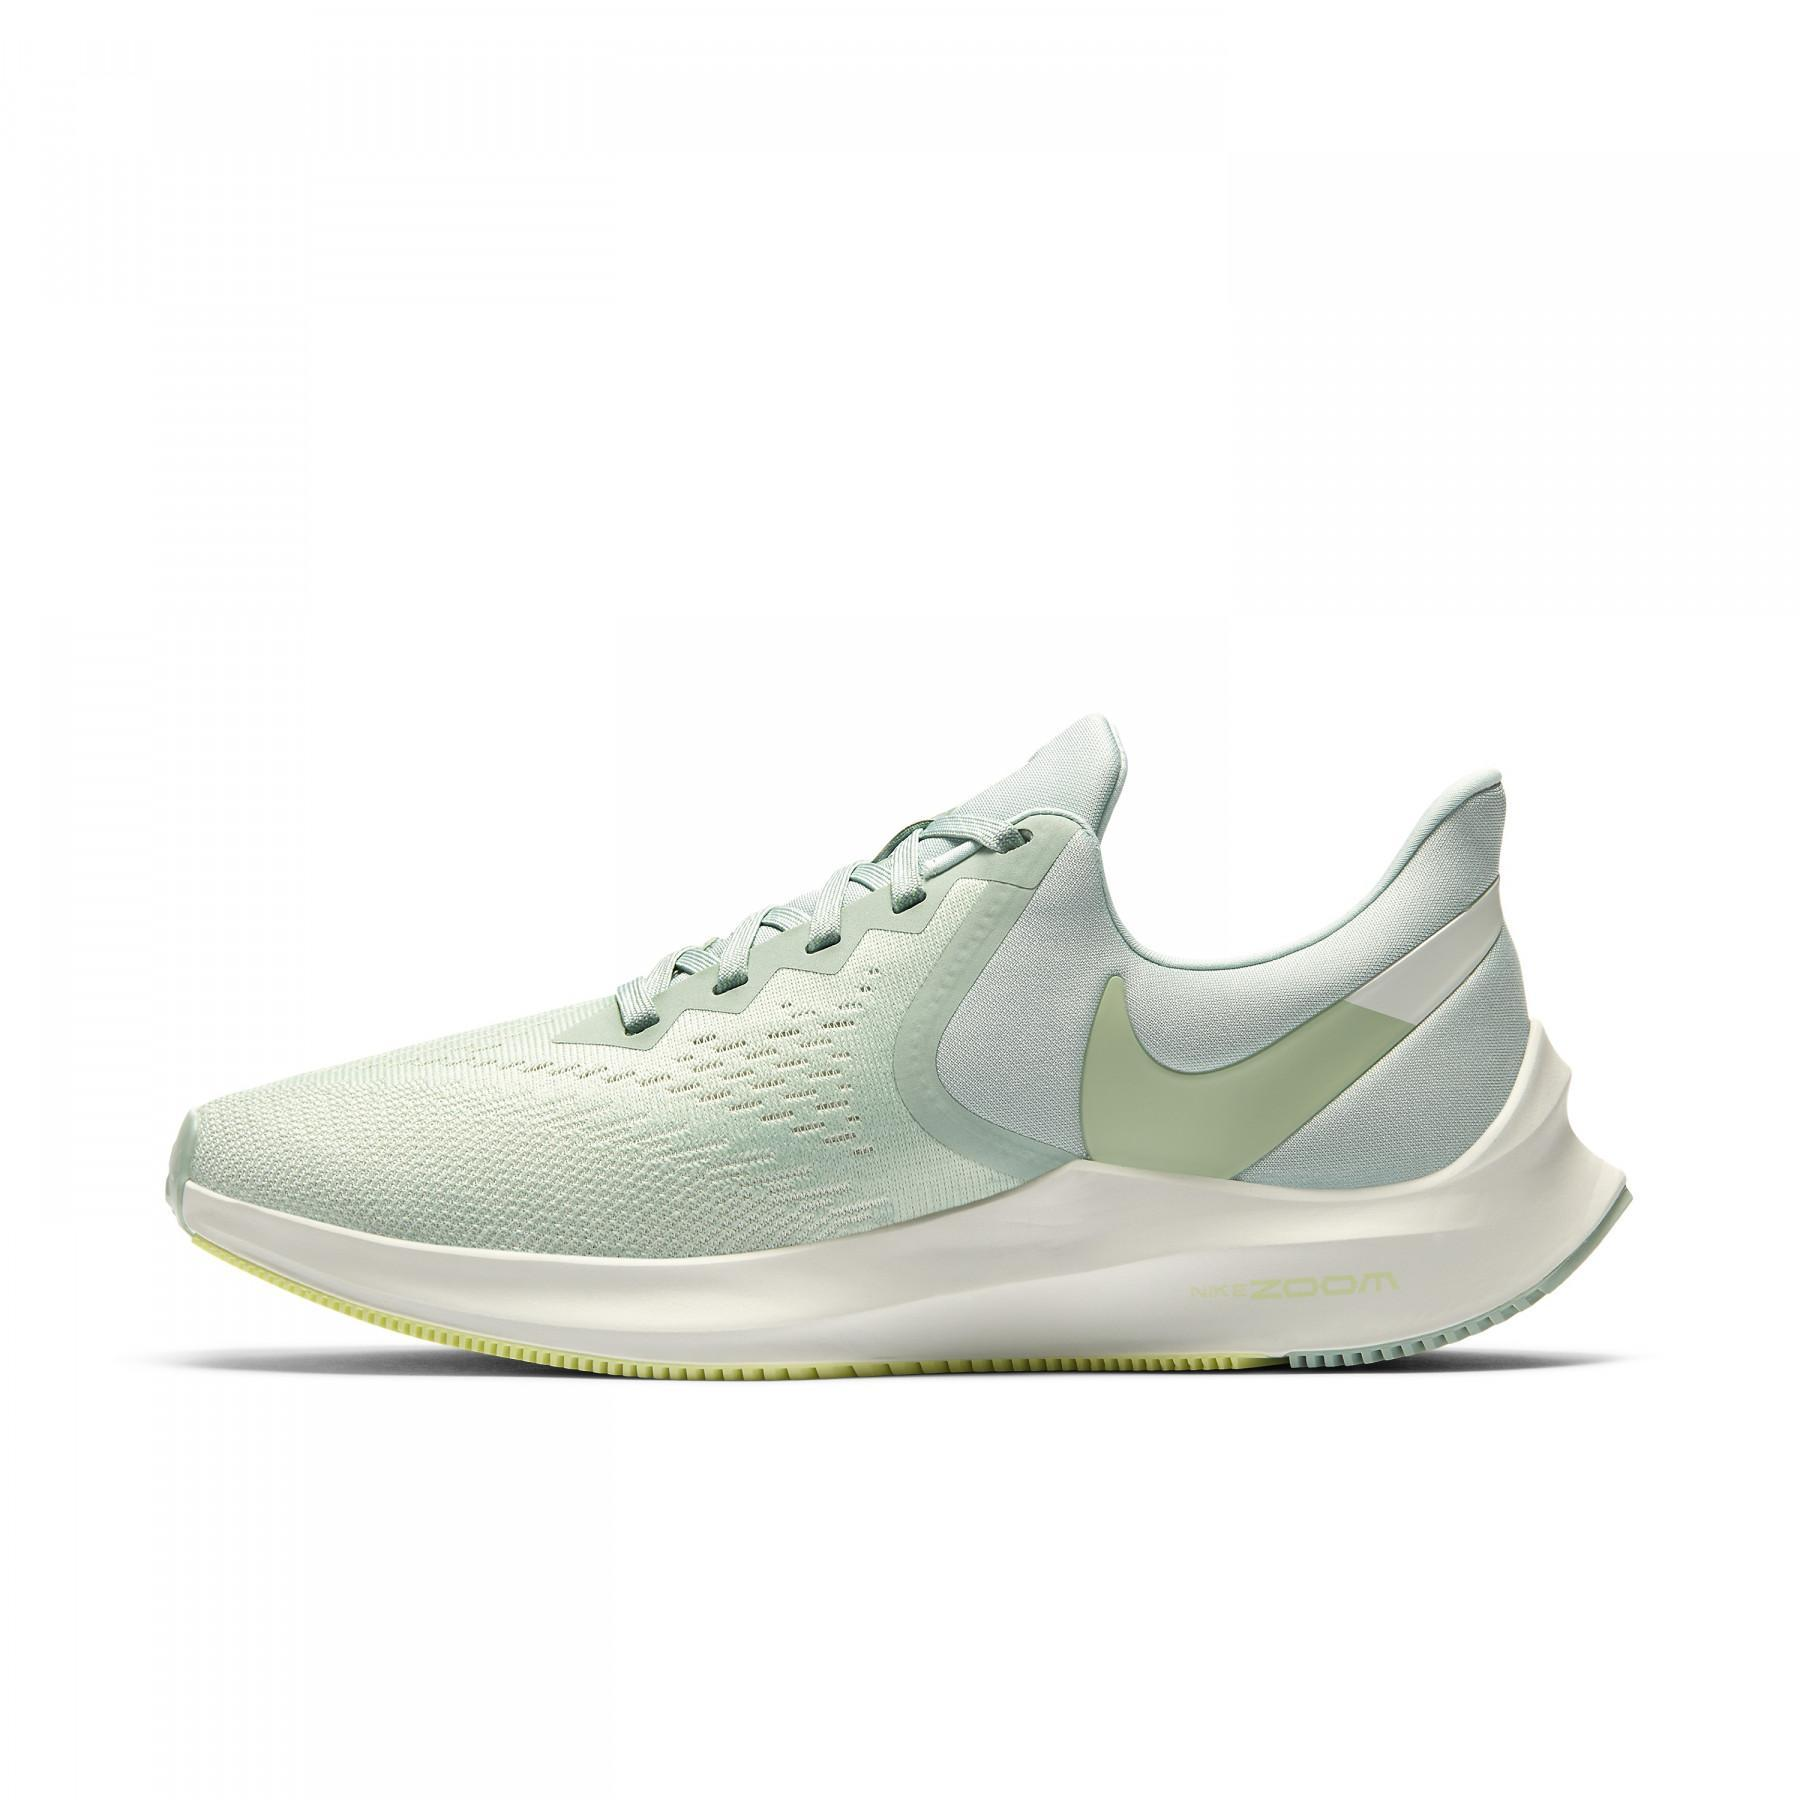 Shoes woman Nike Air Zoom Winflo 6